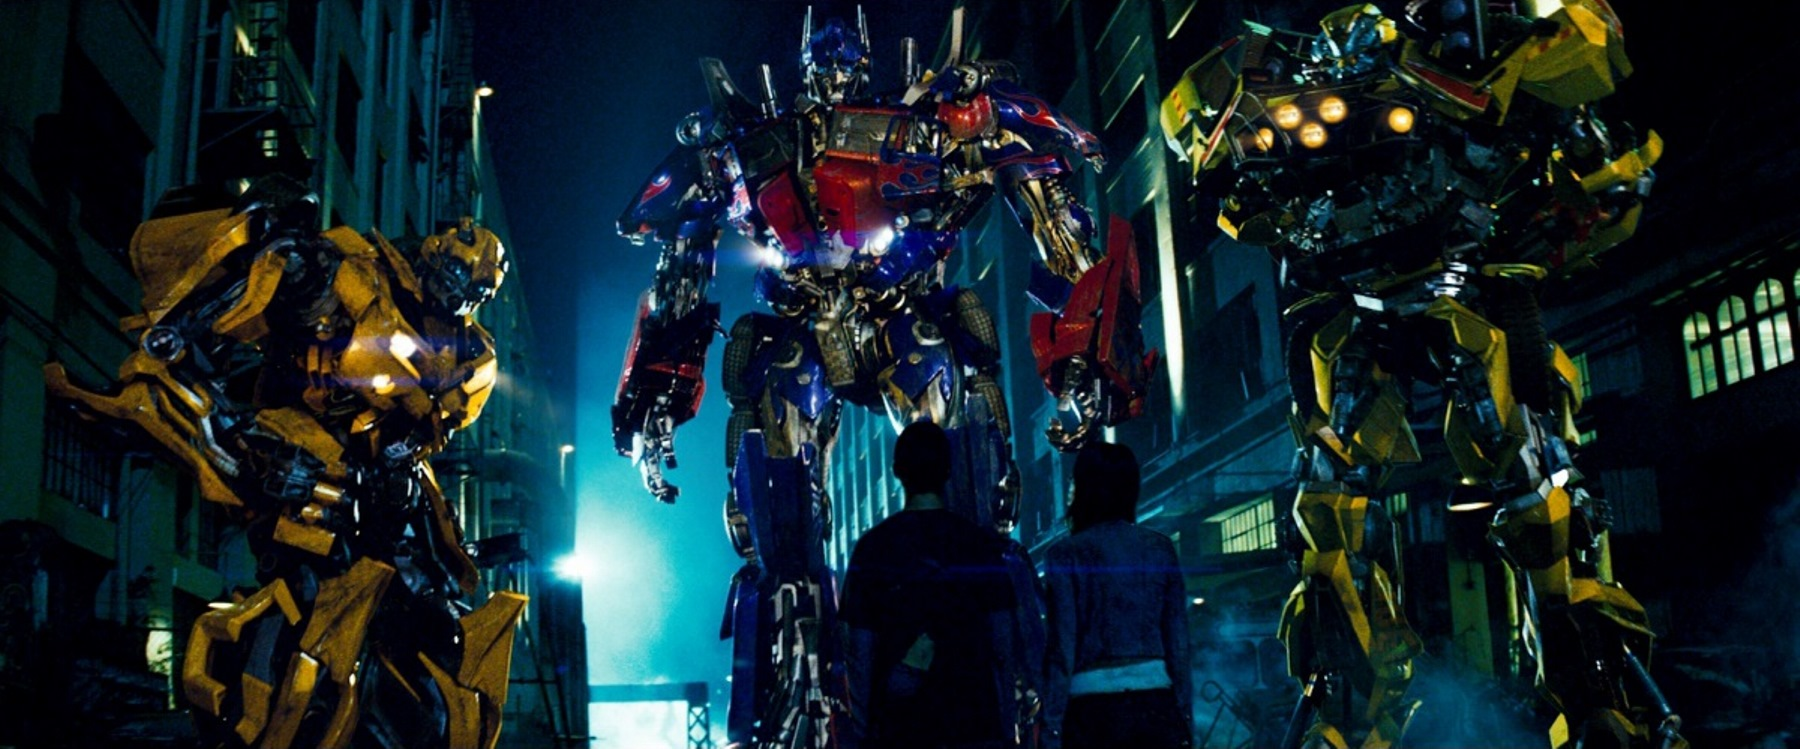 Megan Fox, Shia LaBeouf meet the Autobots in Transformers (2007)